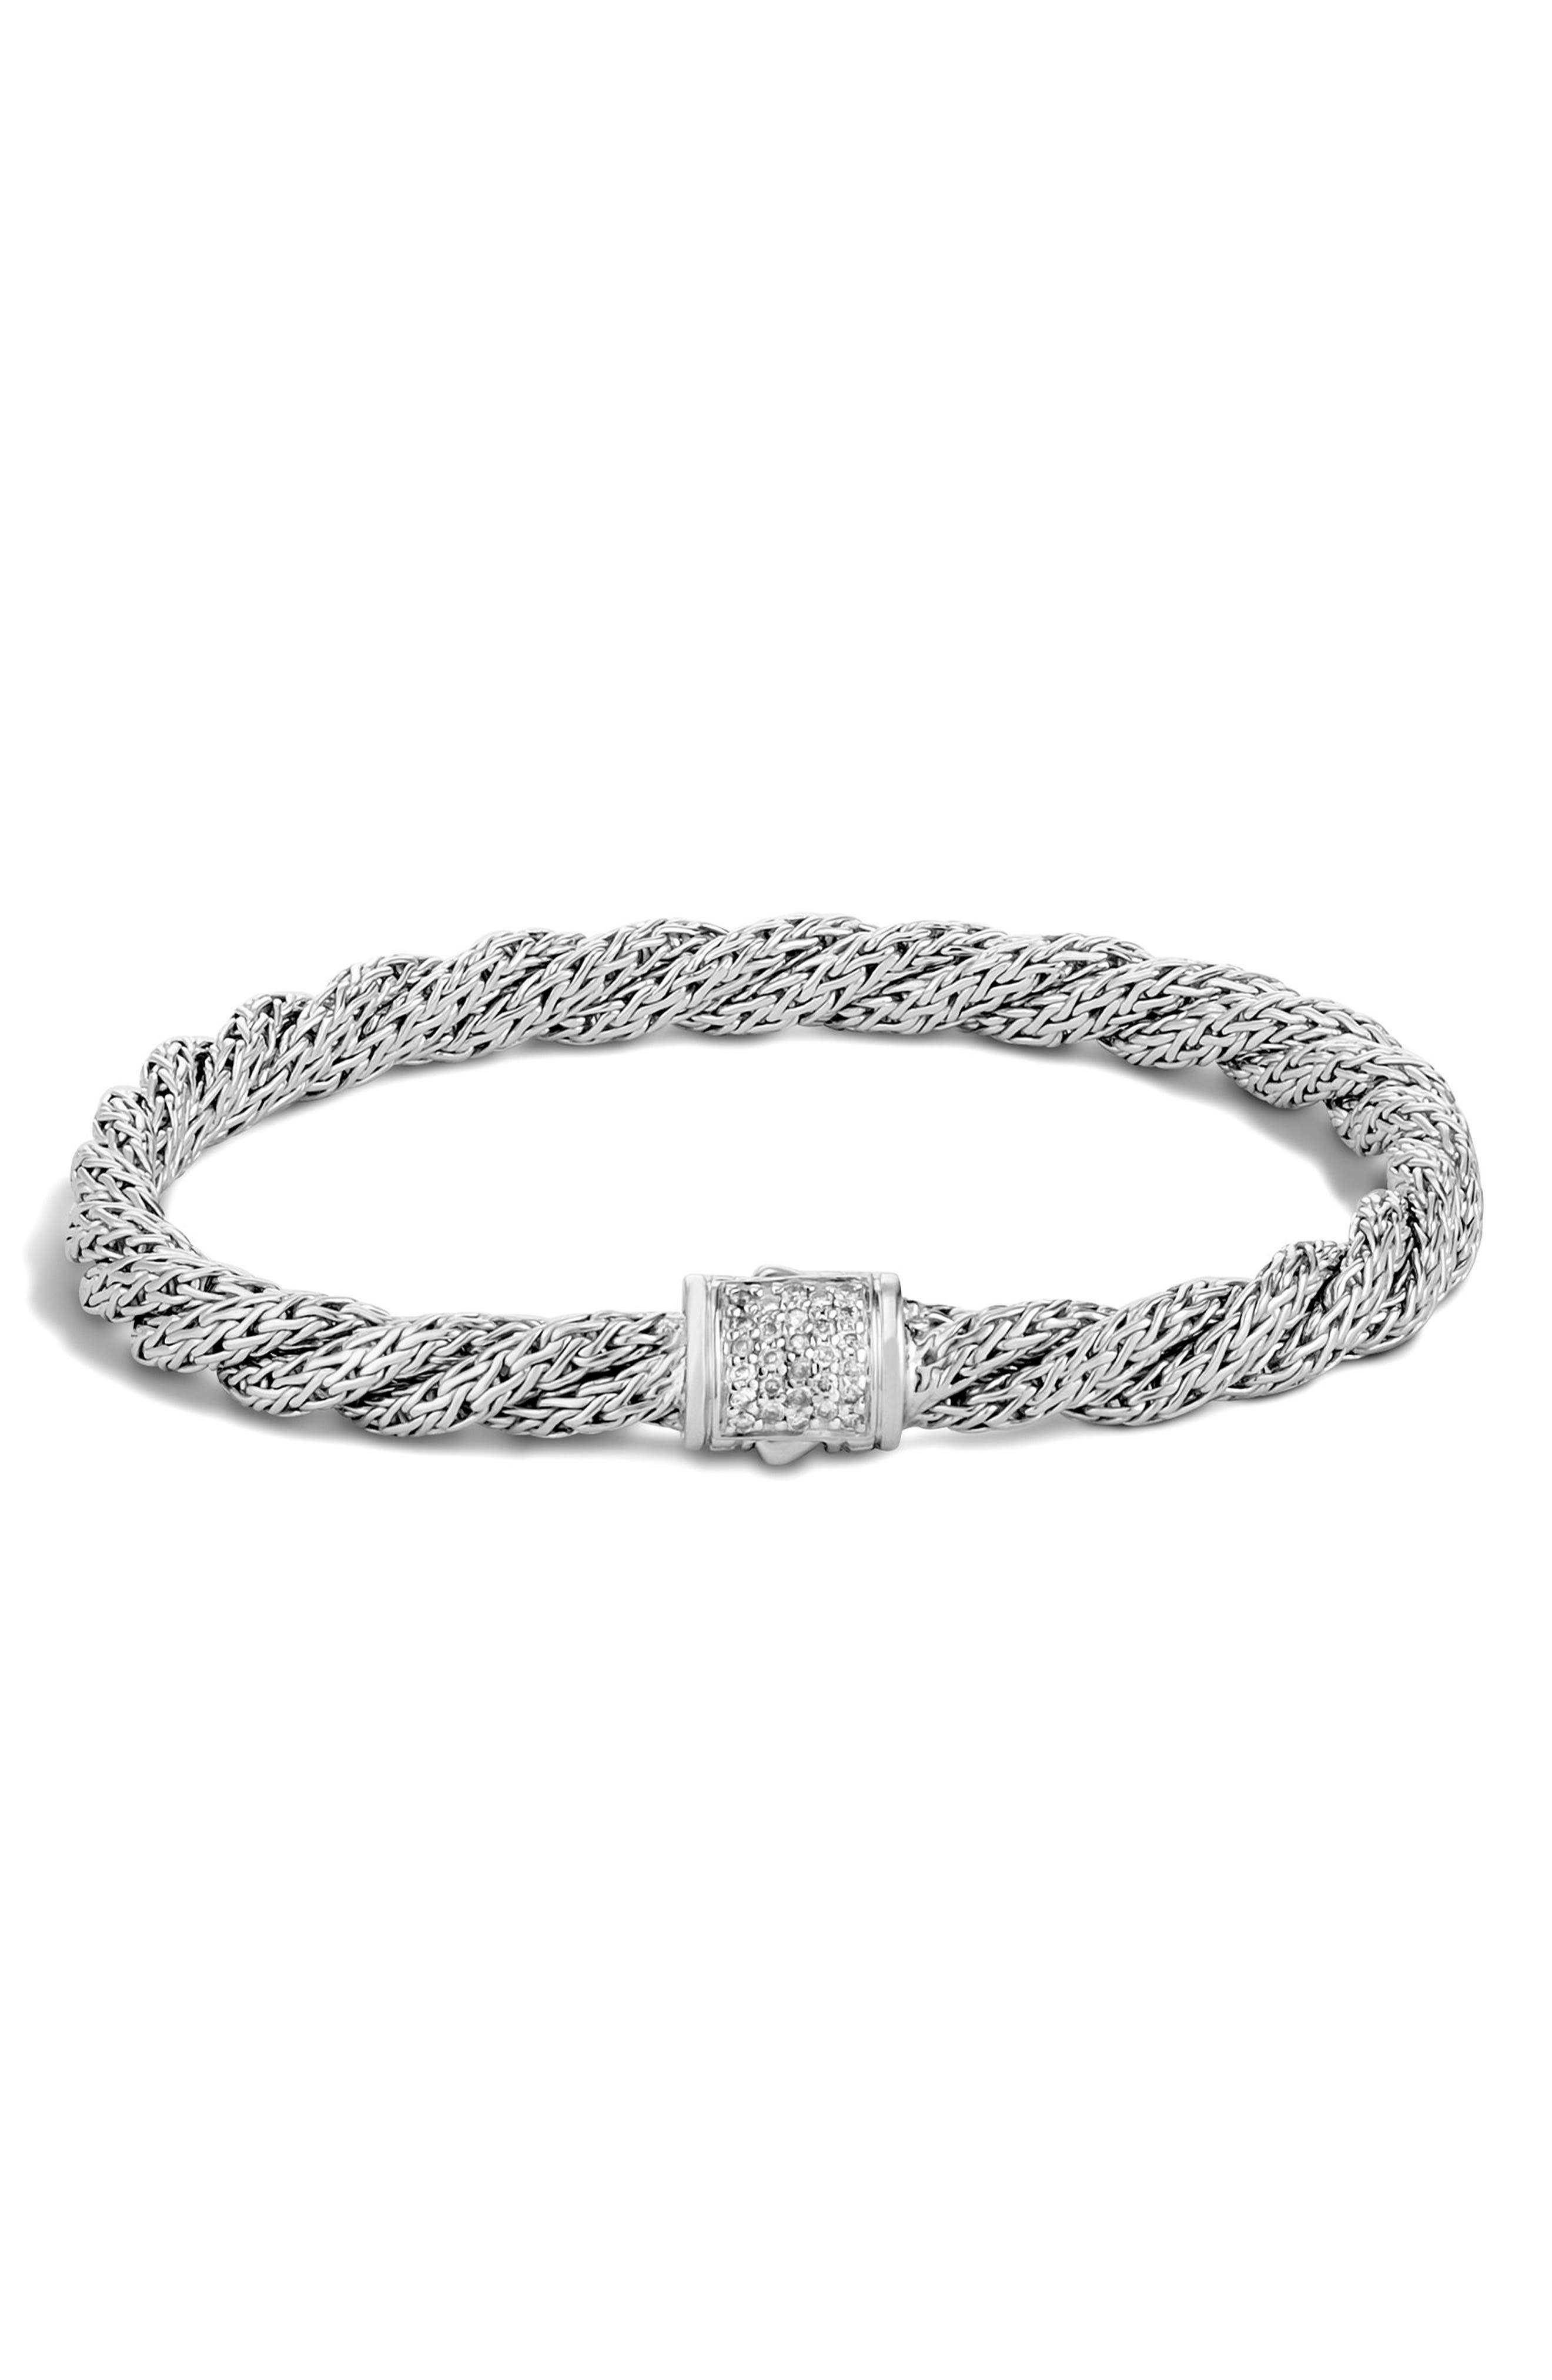 Twist Chain 5mm Bracelet with Diamonds,                             Main thumbnail 1, color,                             Silver/ Diamond